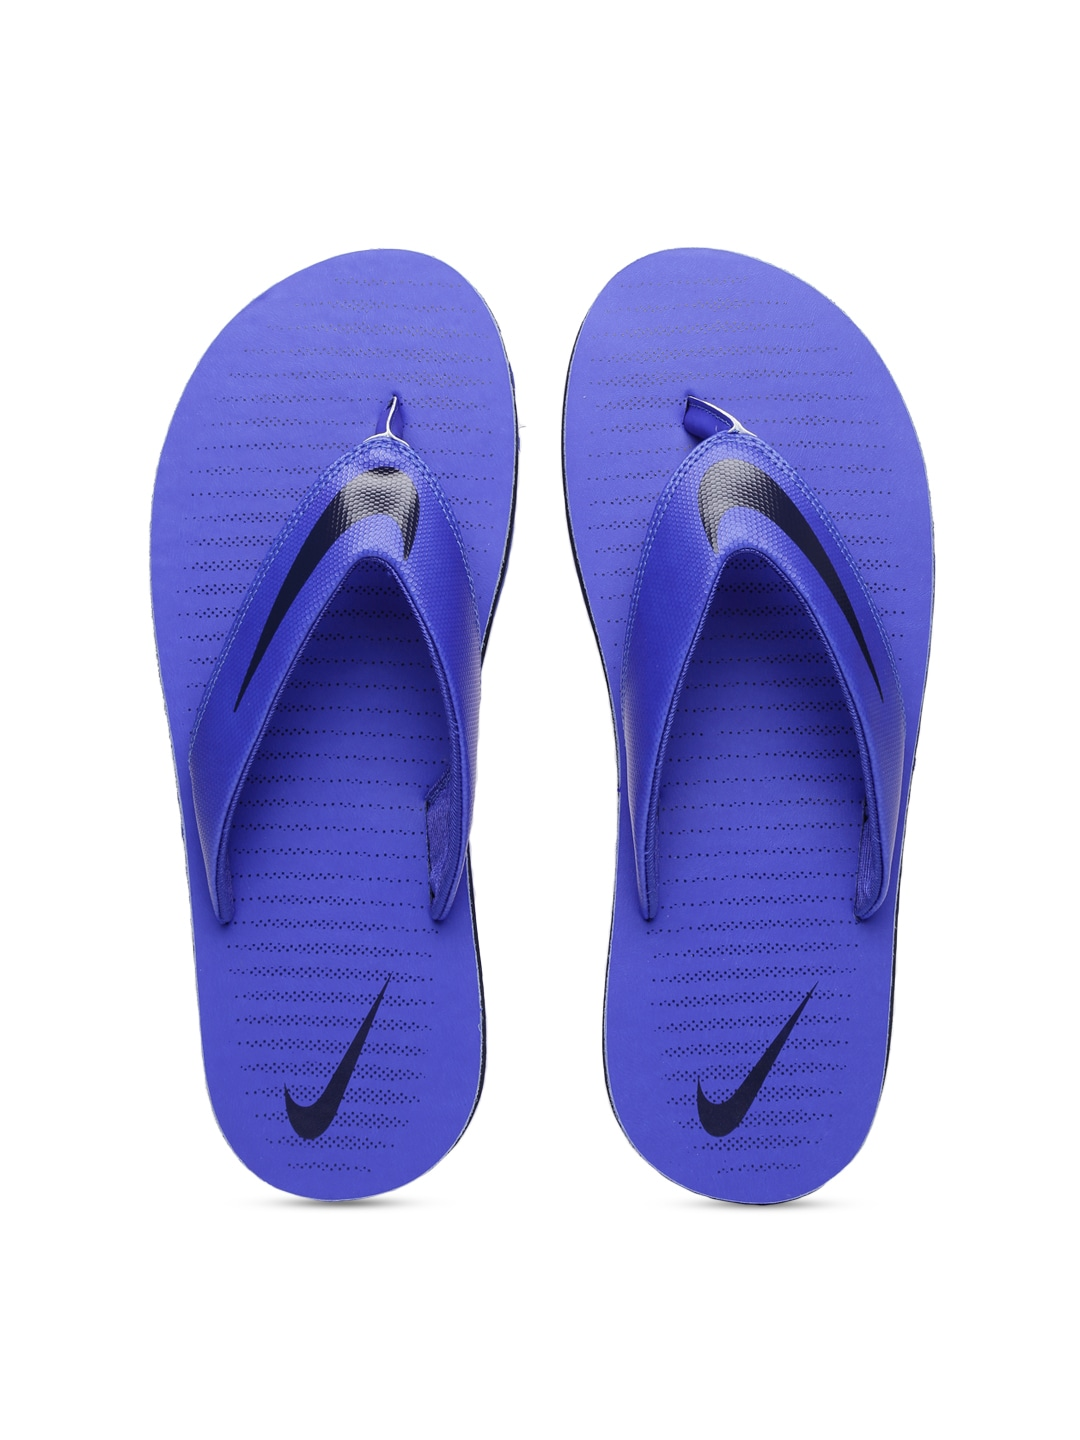 35cde0858efa Flip Flops for Men - Buy Slippers   Flip Flops for Men Online